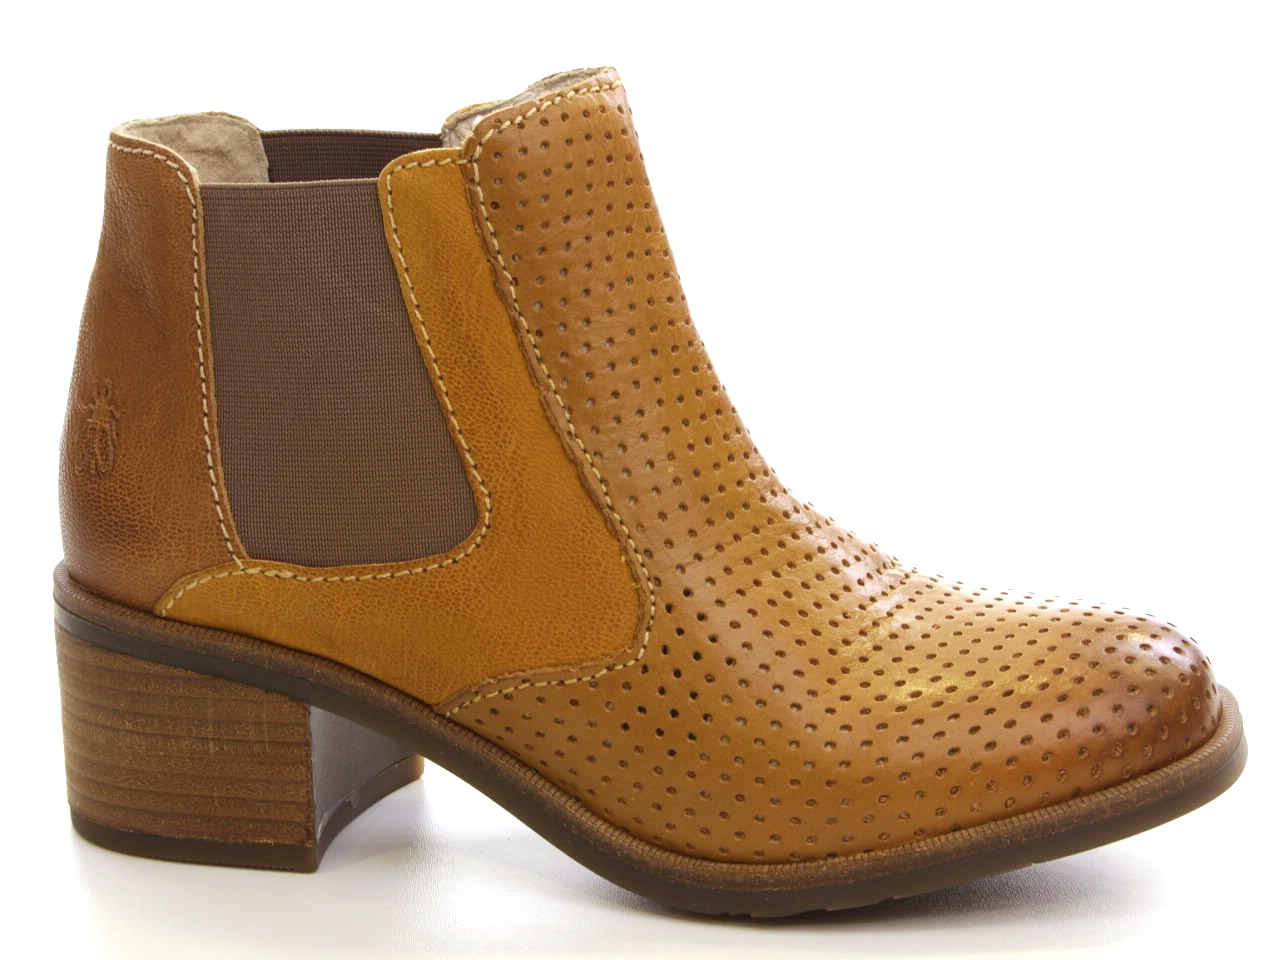 Flat Ankle Boots Fly London - 339 ANOA